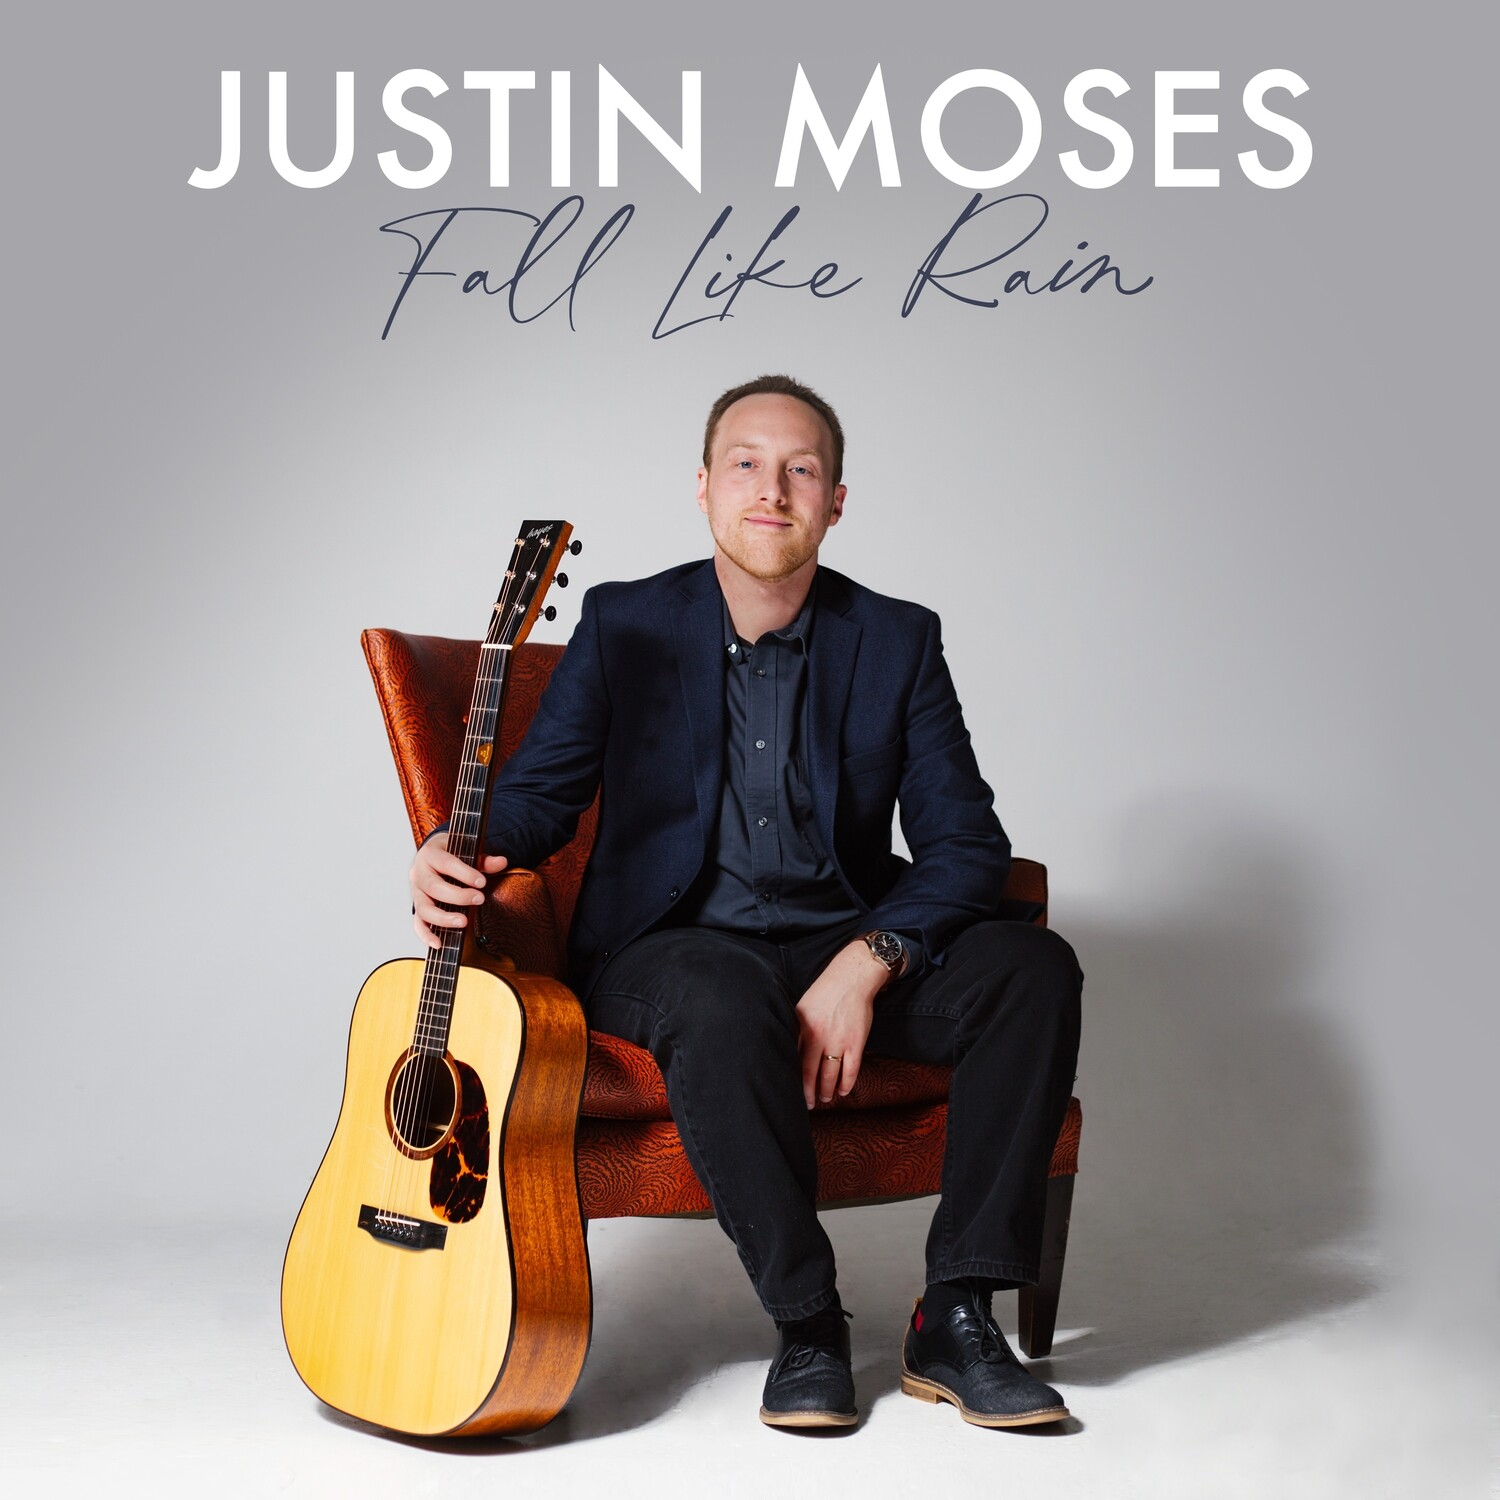 Justin Moses - Fall Like Rain